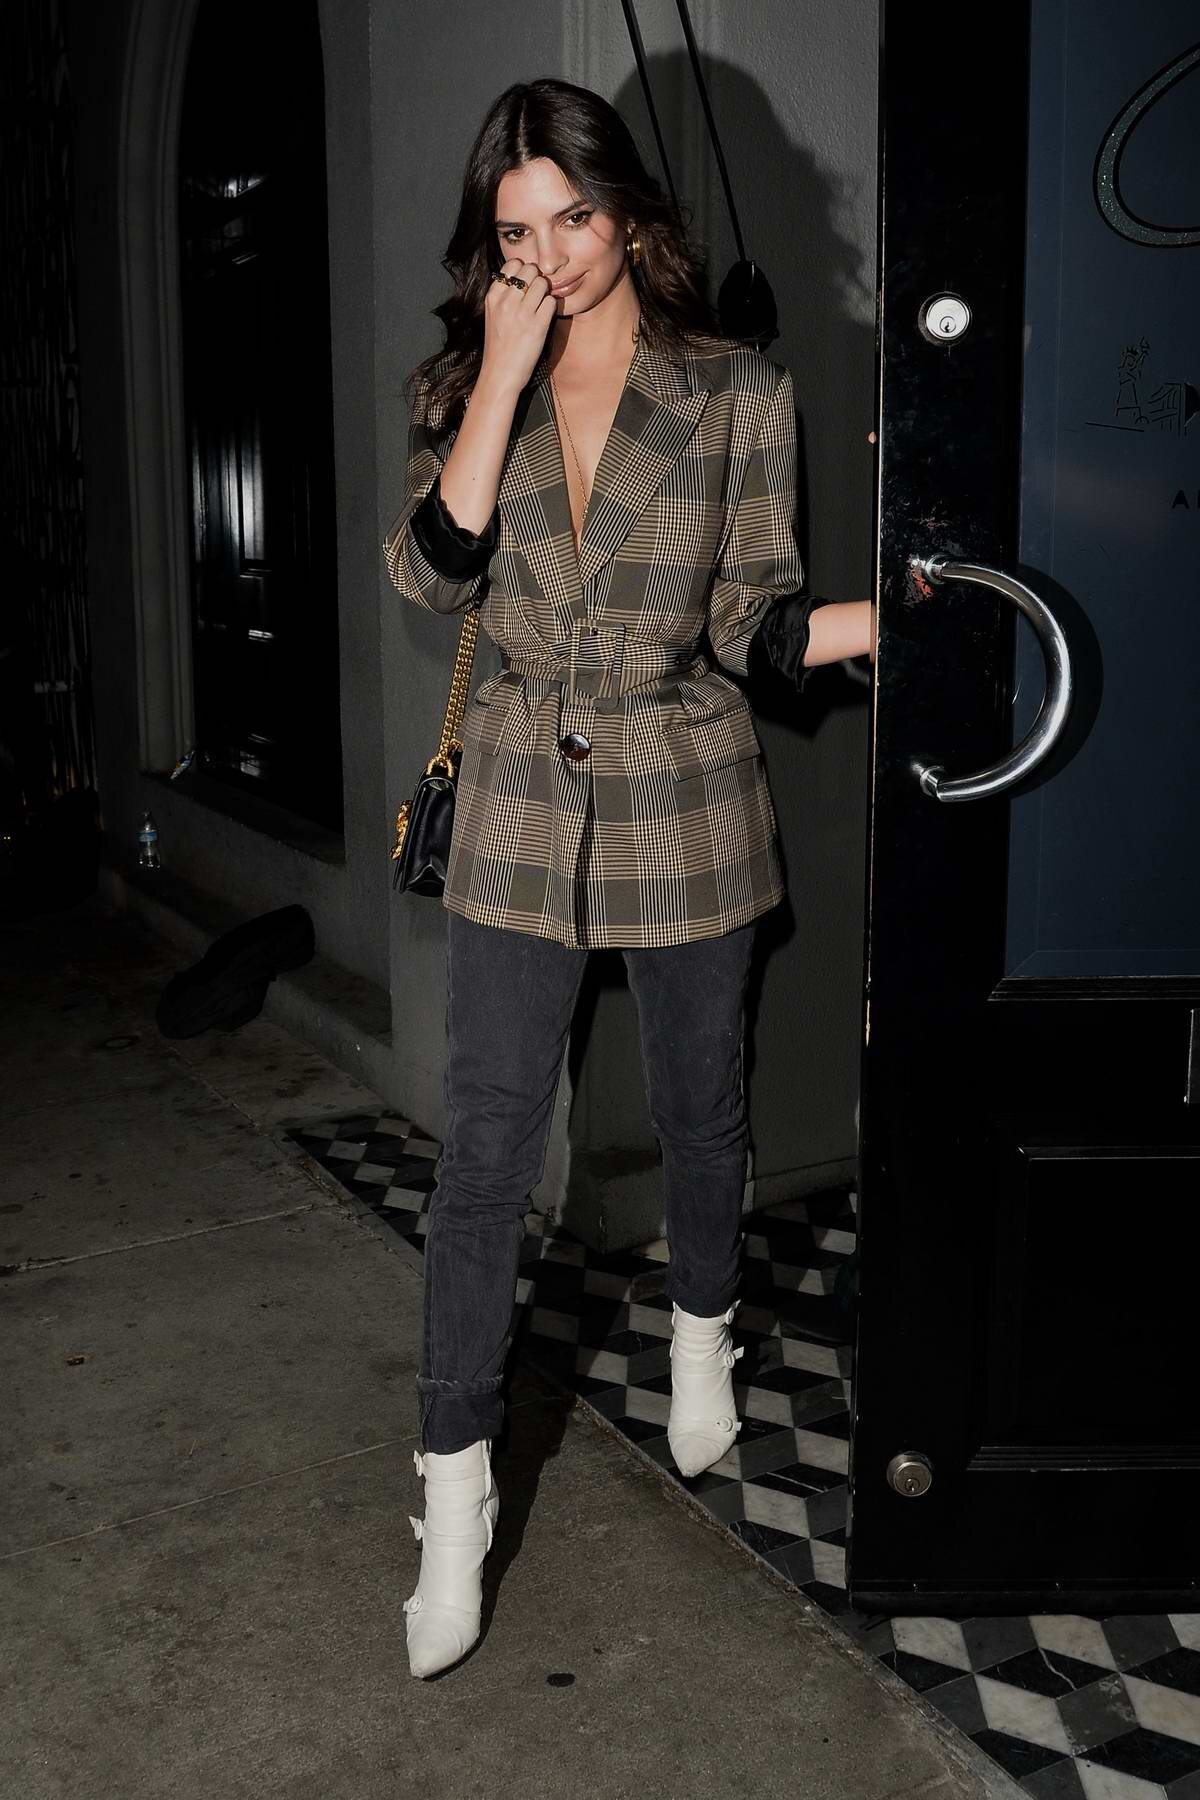 how-to-wear-black-jeans-emily-ratajkowski-wears-plaid-jacket-with-black-jeans.jpg